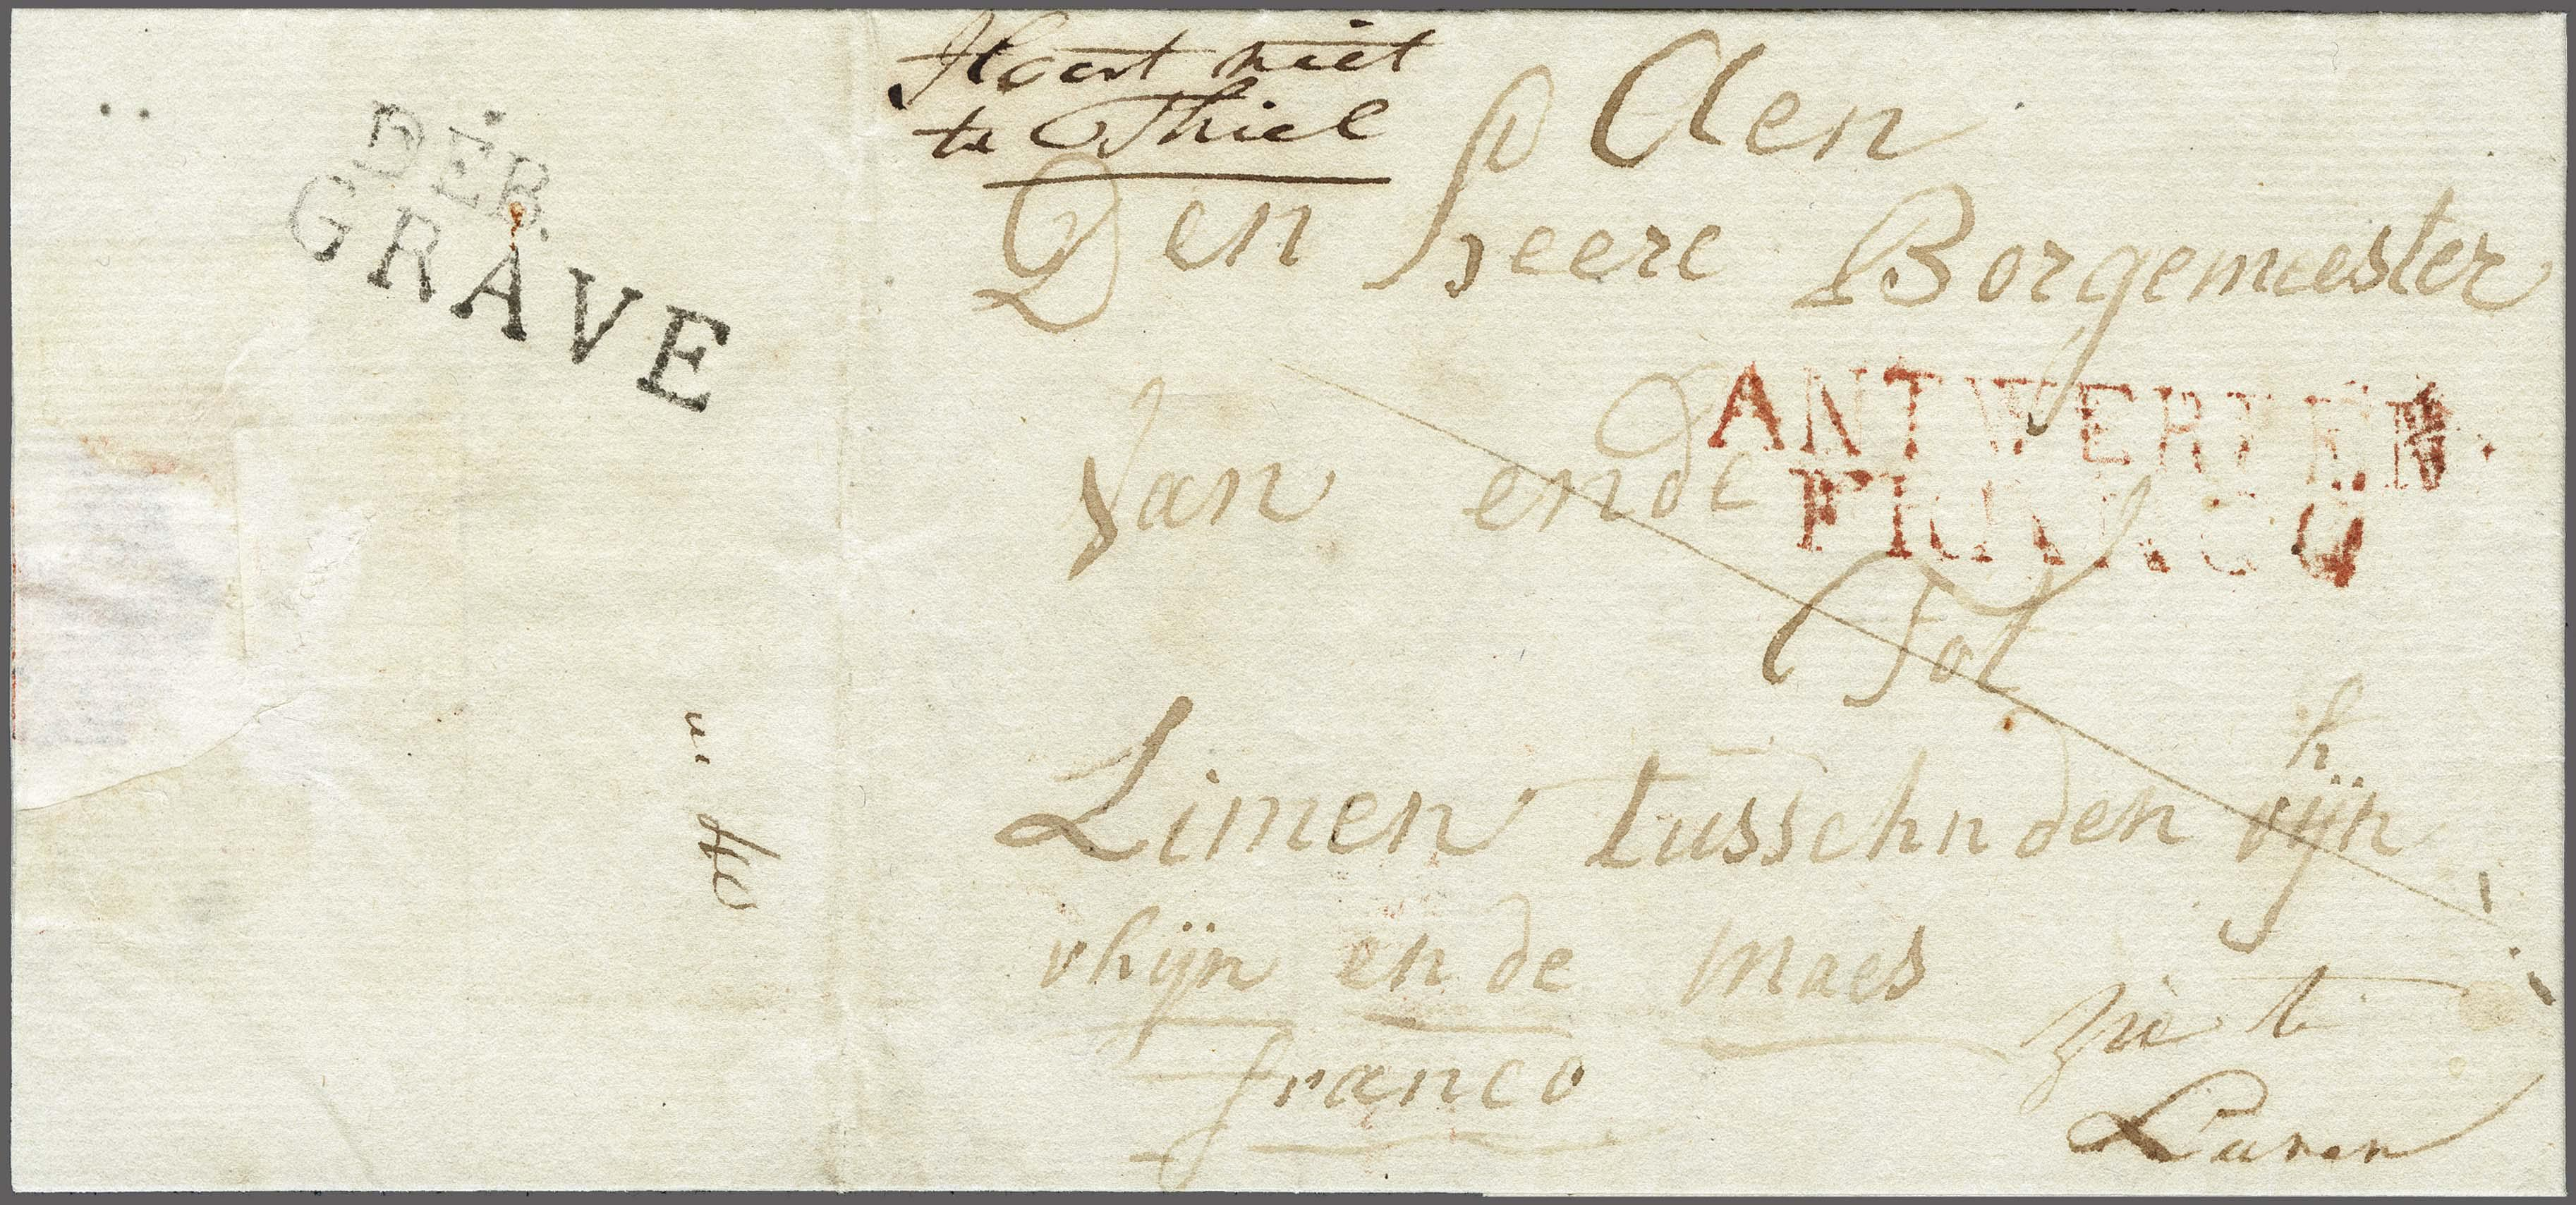 Lot 2413 - Netherlands and former colonies Netherlands -  Corinphila Veilingen Auction 250-253 - Day 3 - Netherlands and former colonies - Single lots & Picture postcards